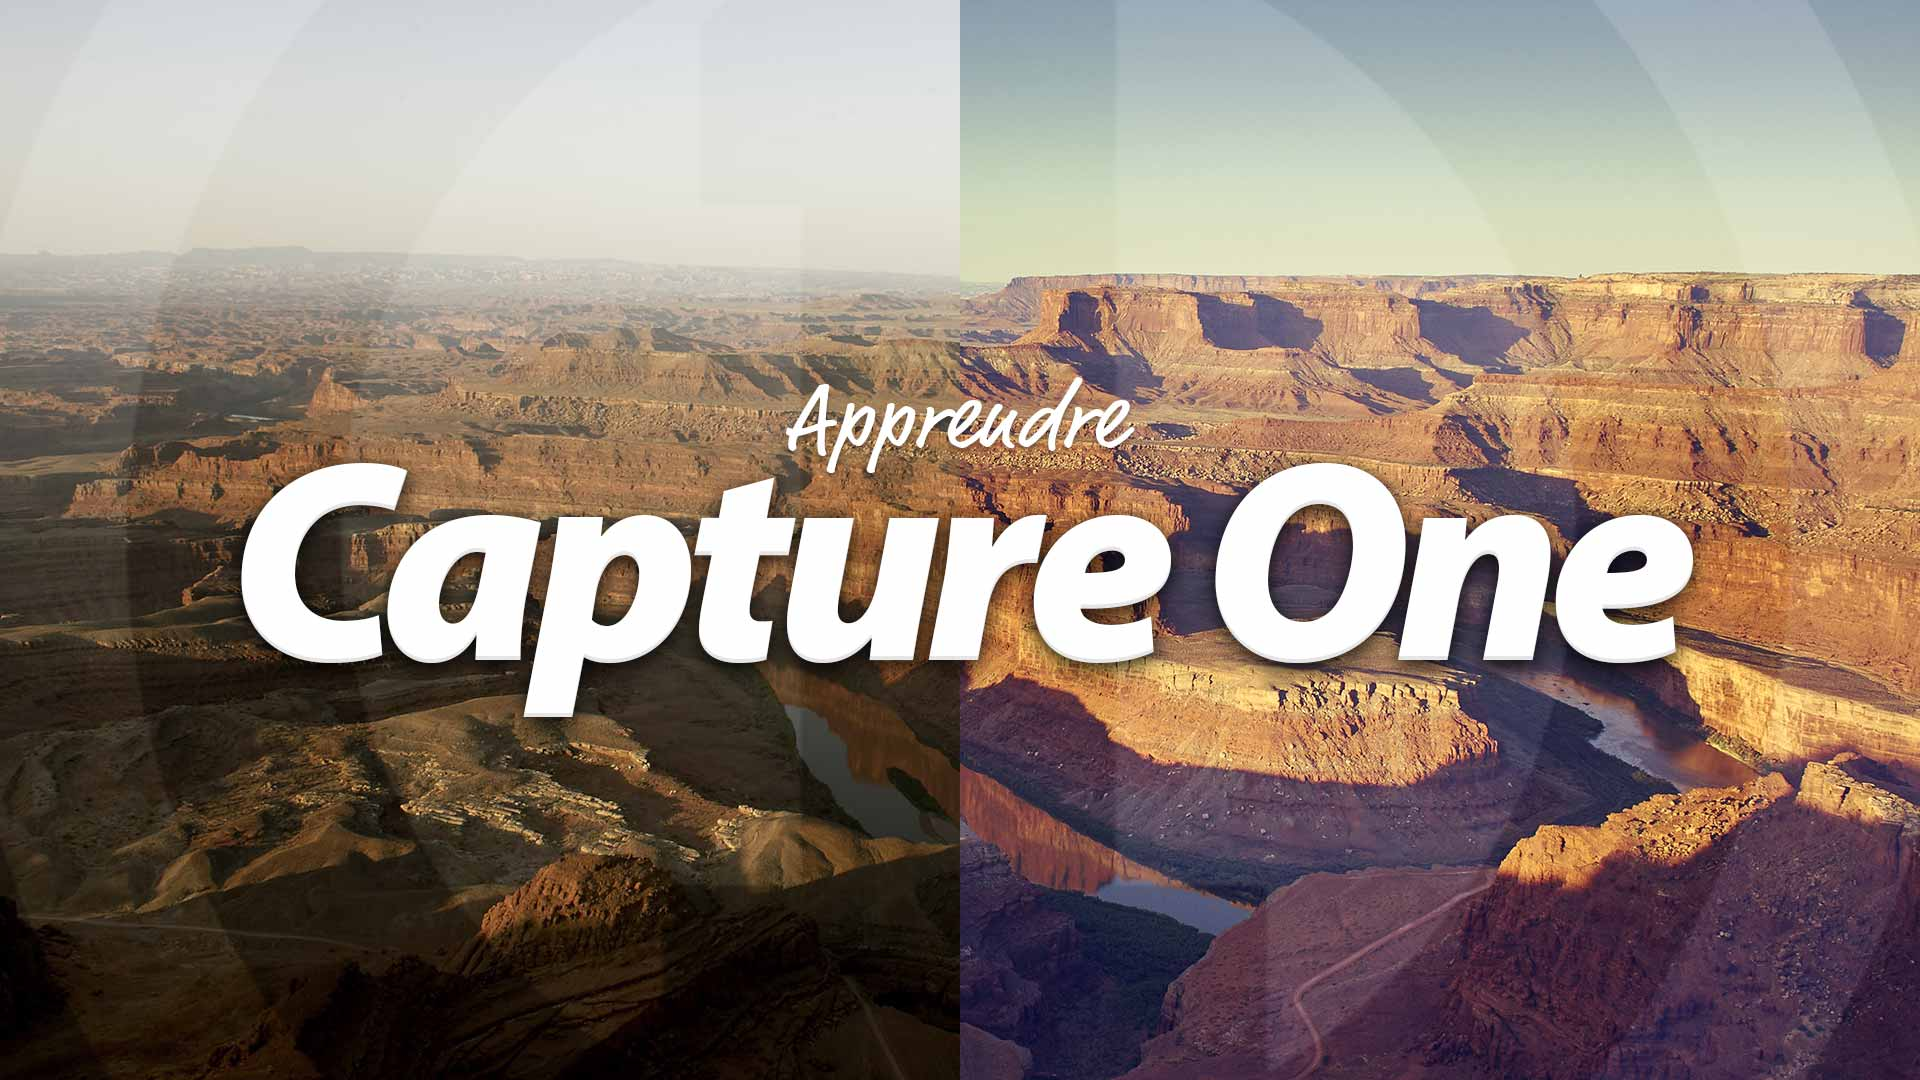 Apprendre Capture One 8